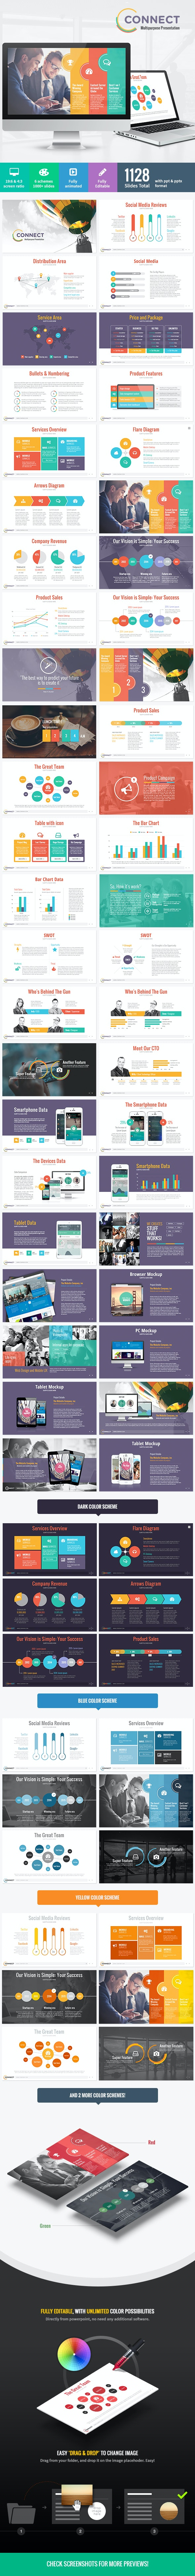 Connect - Modern Powerpoint Template - PowerPoint Templates Presentation Templates